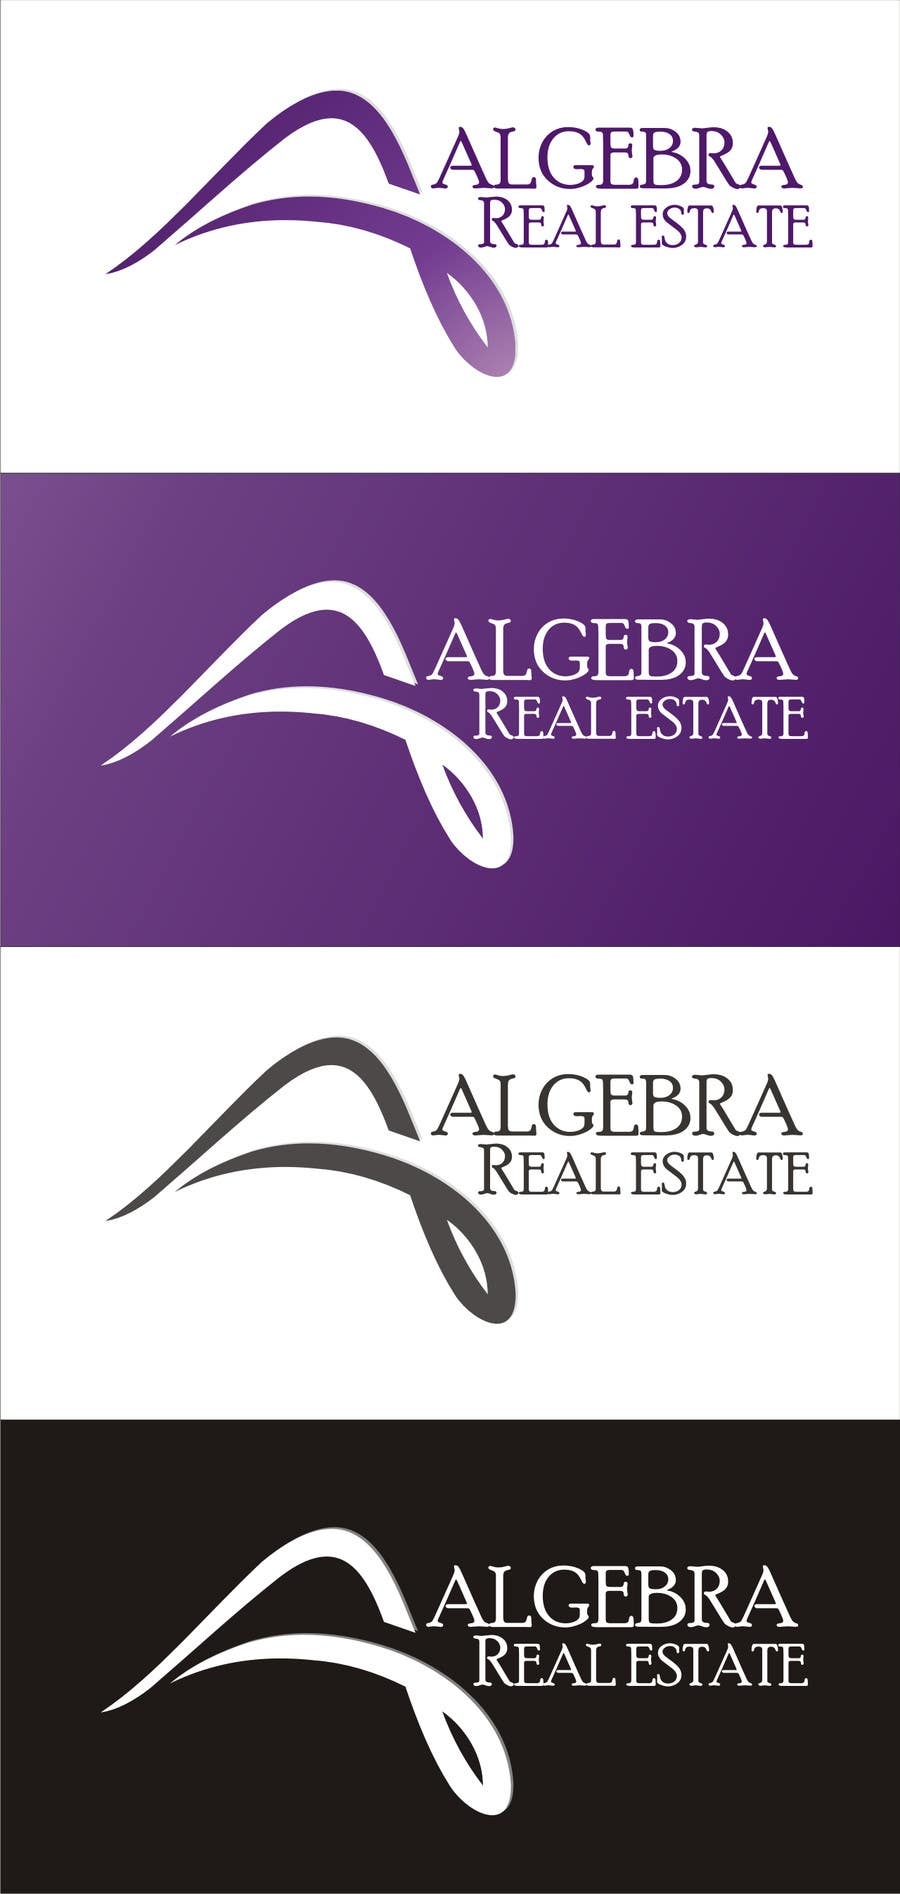 #96 for Design a Logo for Algebra Real Estate by niravashara